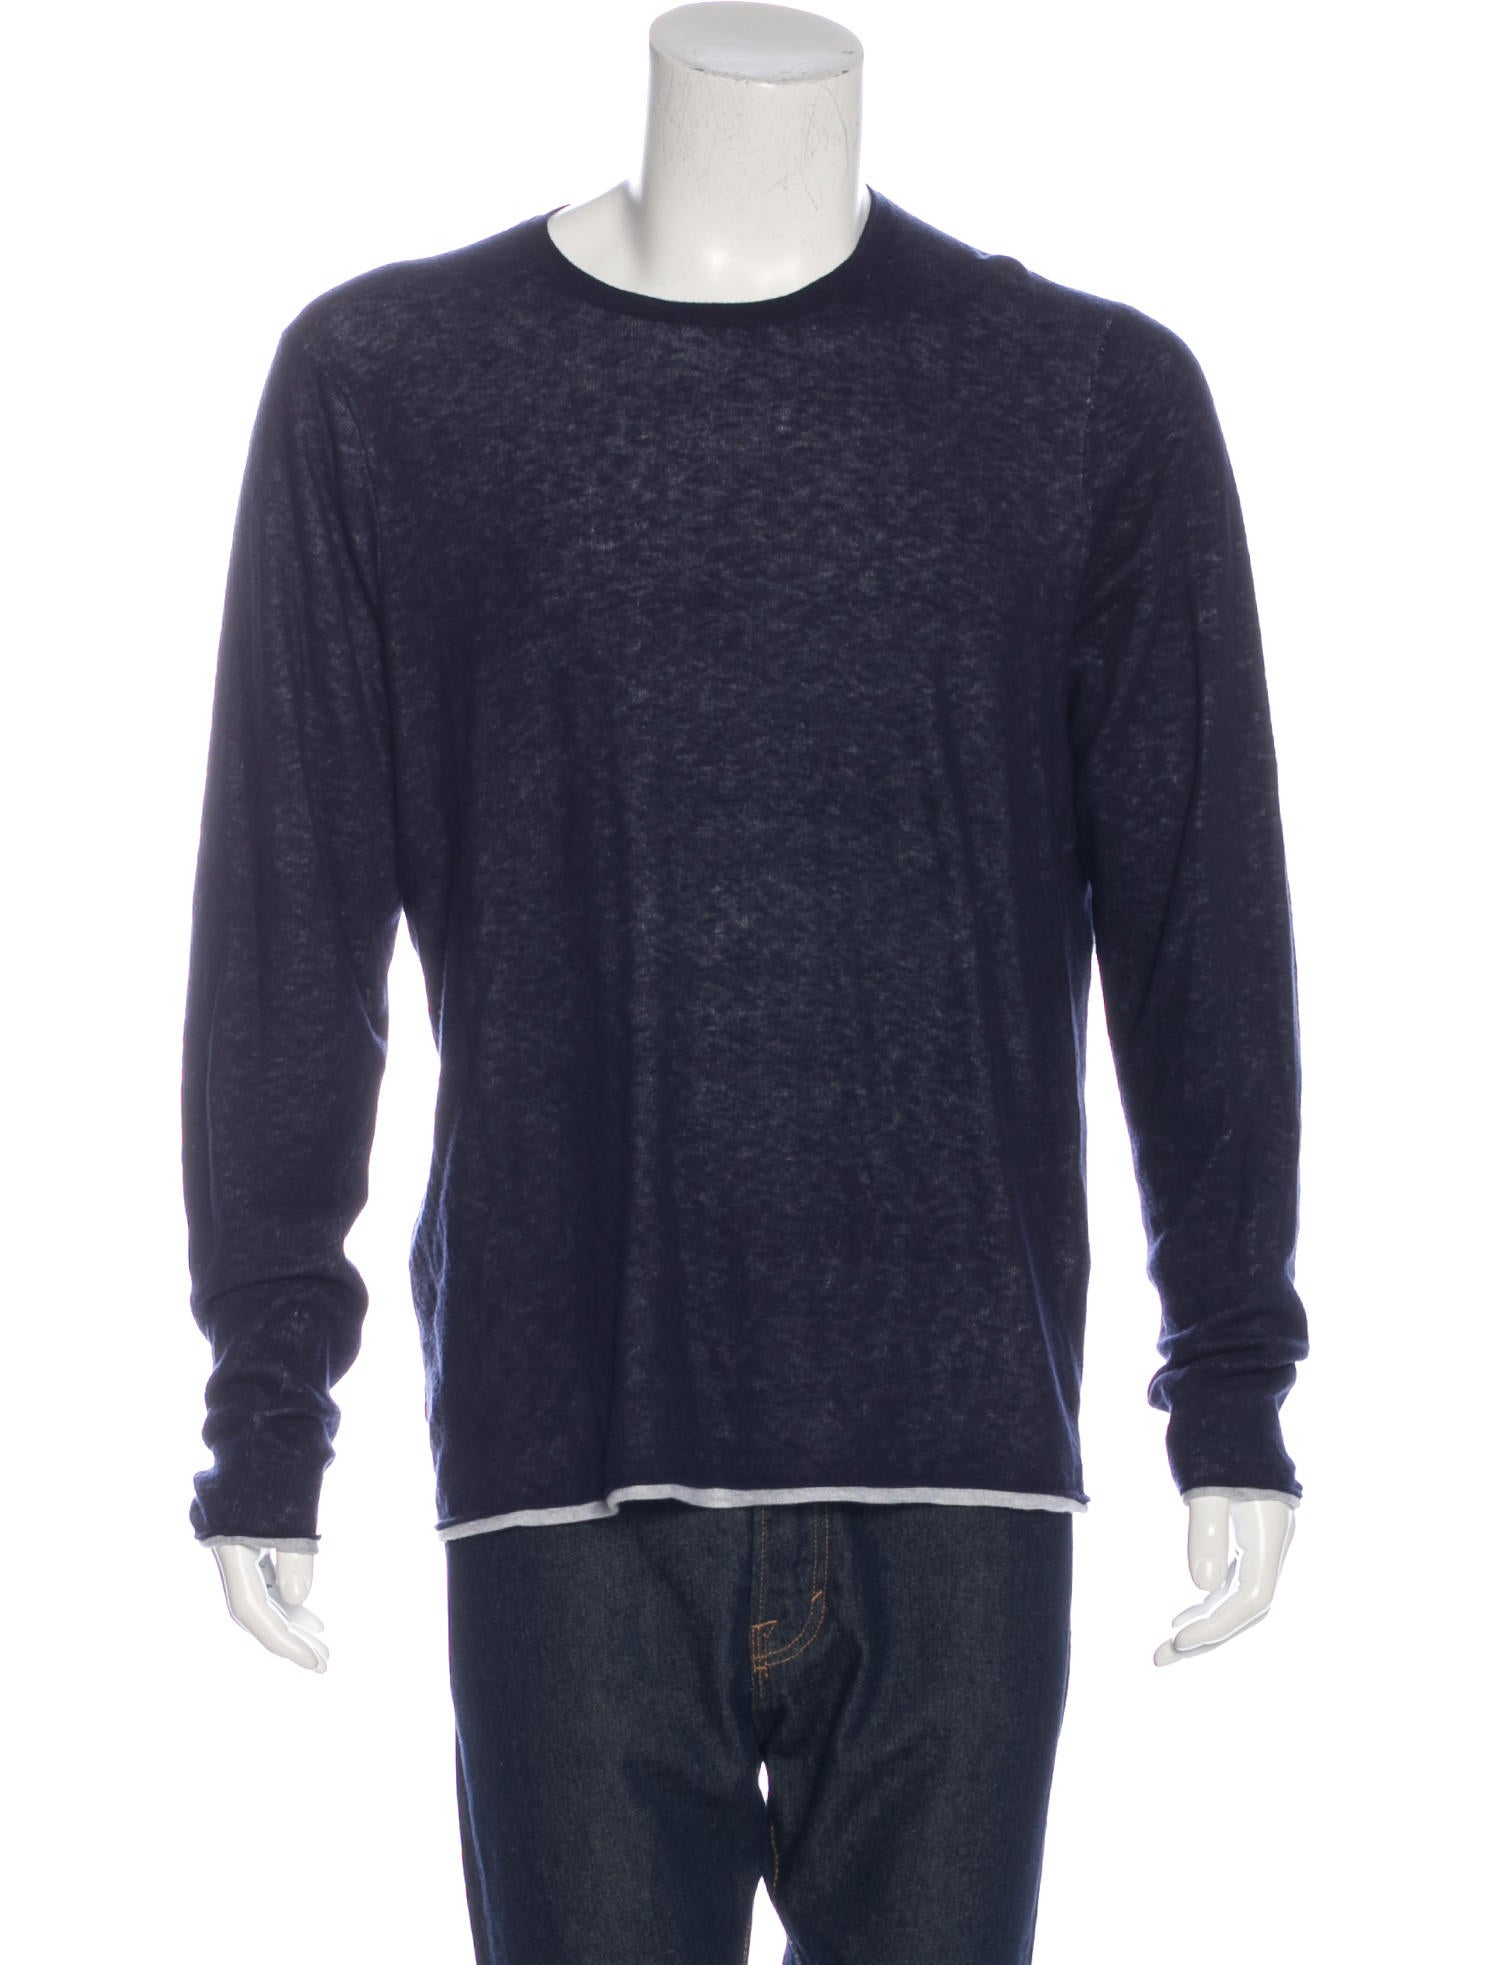 Rag bone crew neck sweater clothing wragb73689 the for Rag and bone mens shirts sale